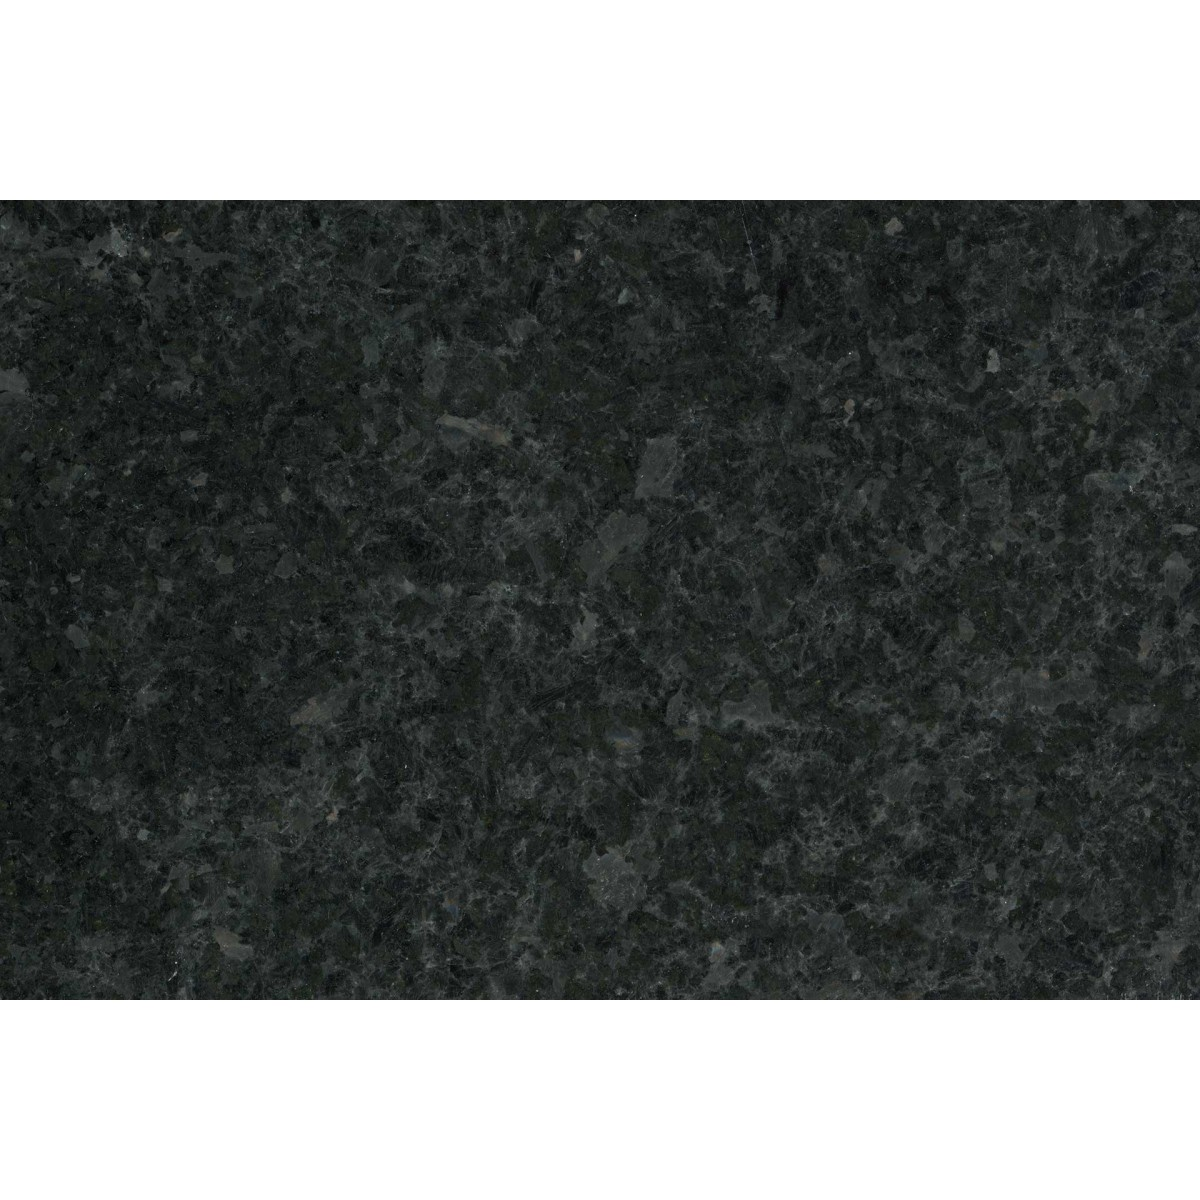 Atlantic Black Nero Assoluto Platin